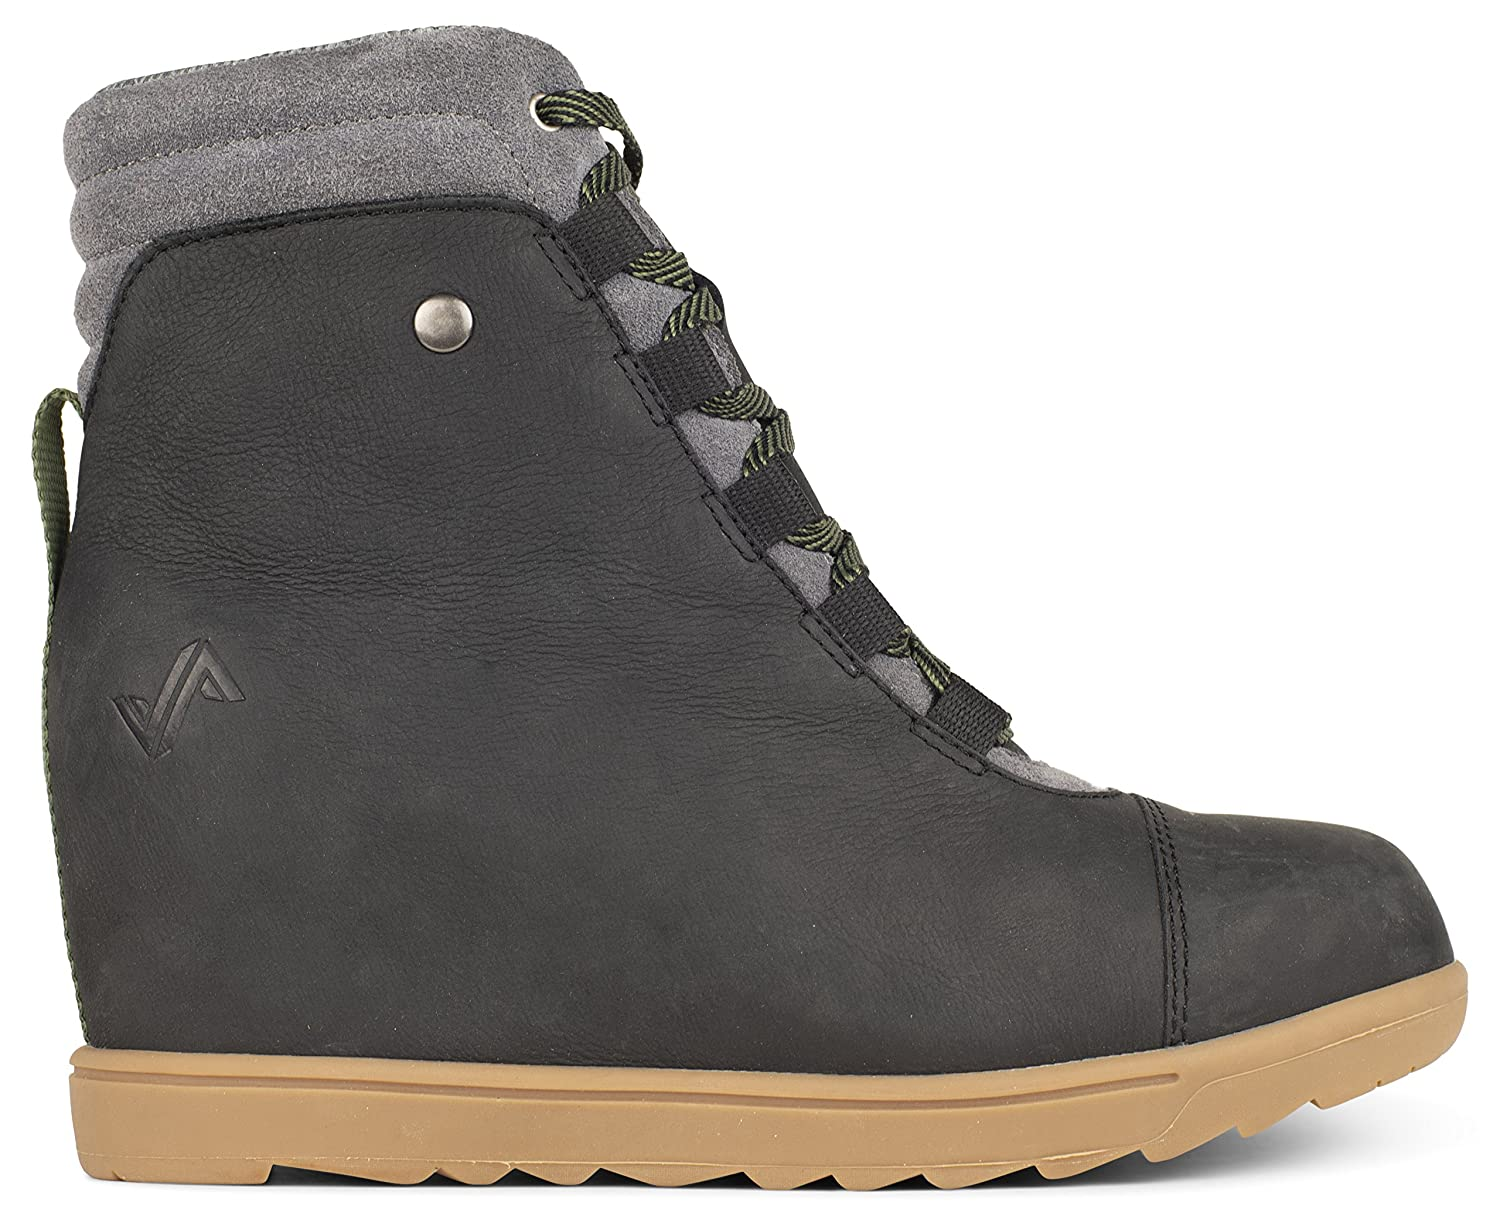 Forsake Alma – Women's Leather Wedge Water-Resistant Boot B075YGSRQM 6.5 M US|Black